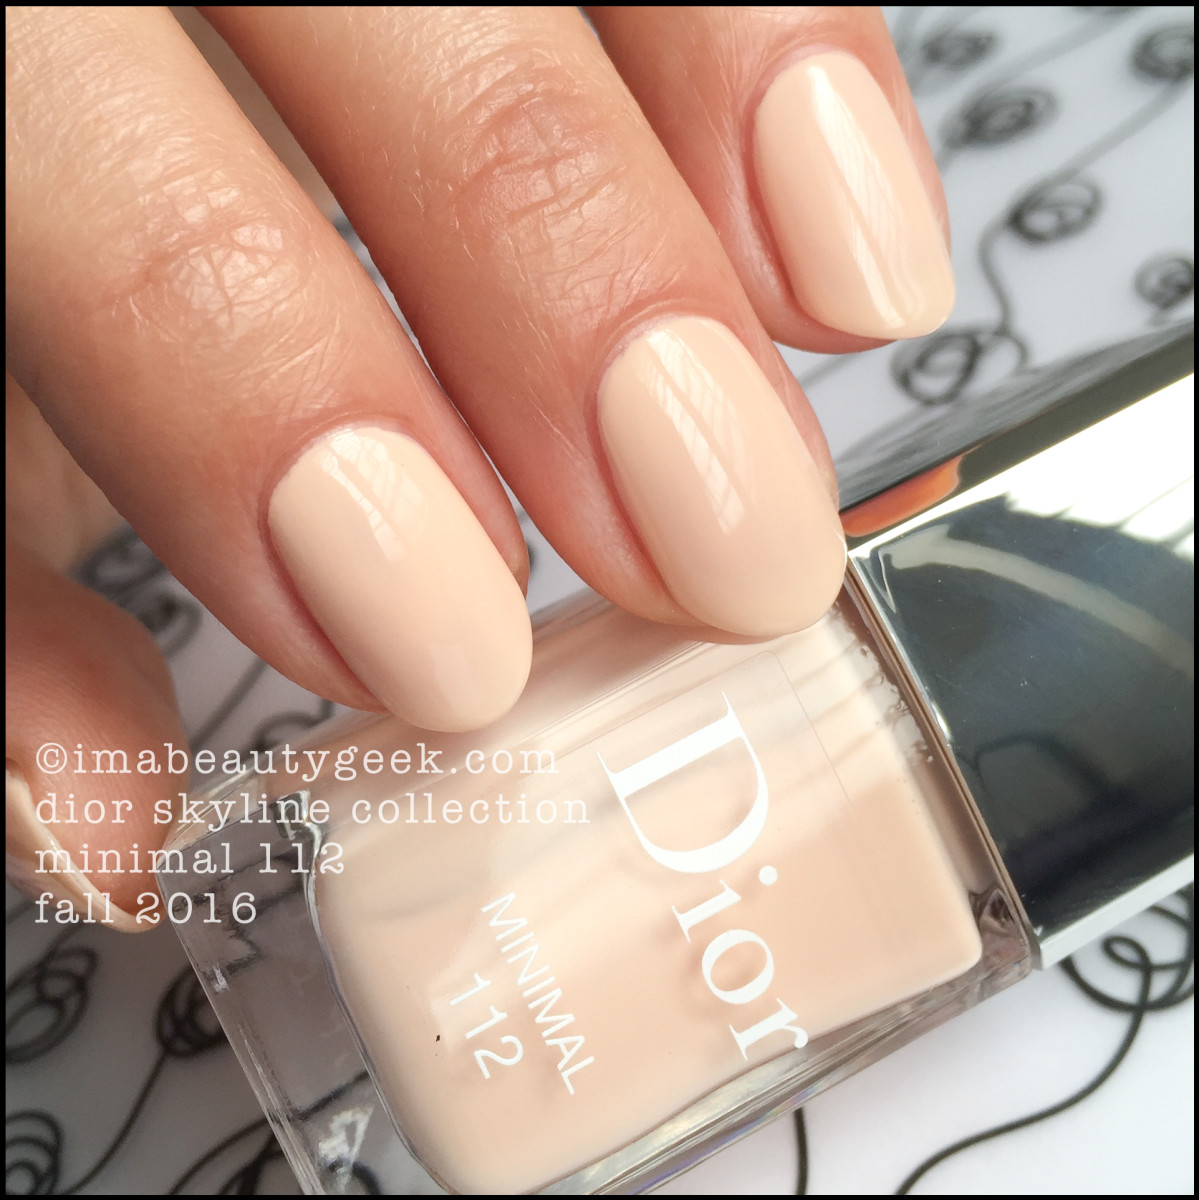 Dior Vernis Minimal 112_Dior Fall 2016 Skyline Collection